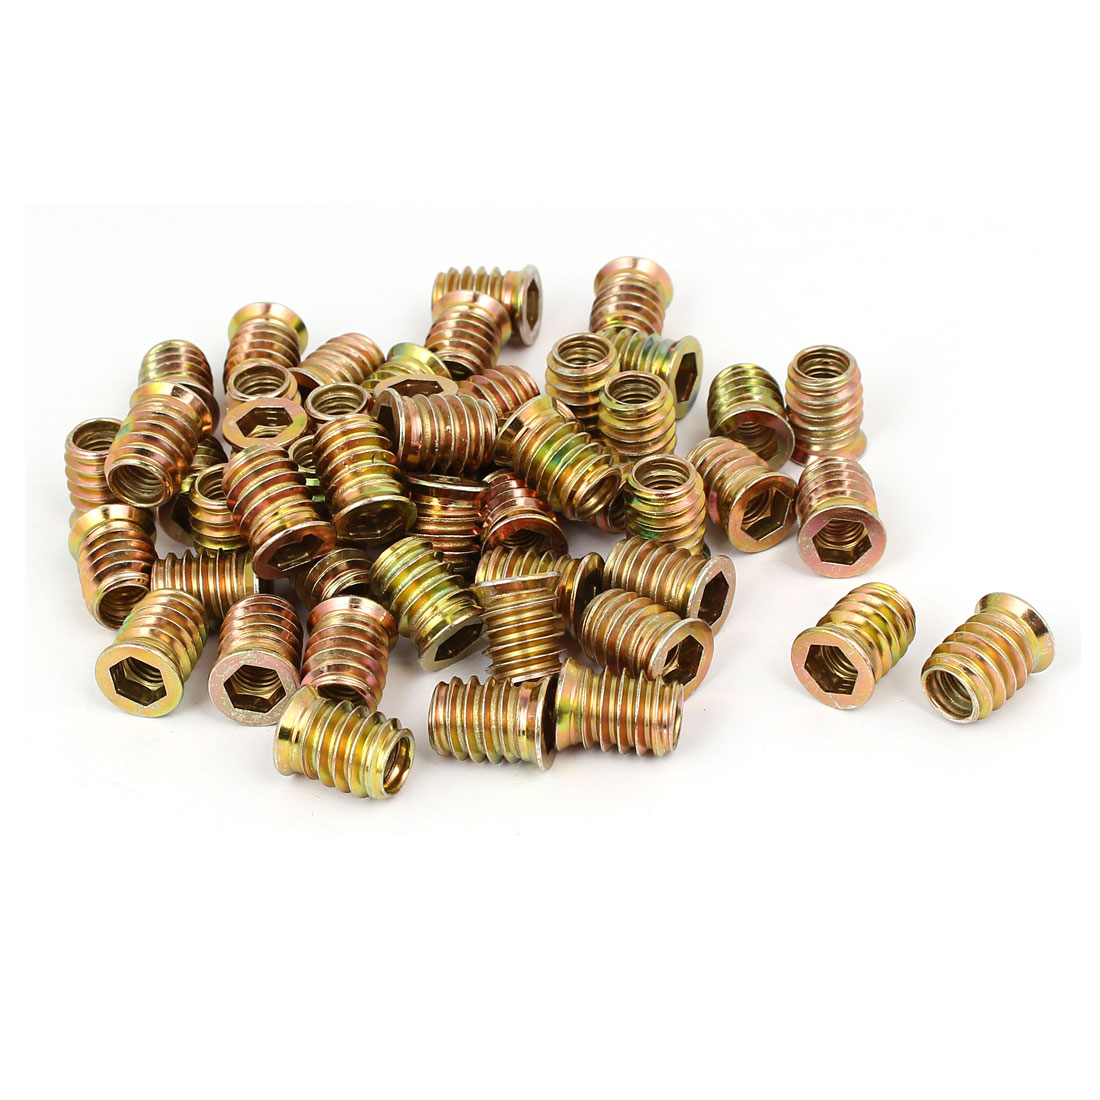 Wood Furniture Fixing Insert Interface Hex Socket E-Nut 8mmx17mm 50pcs